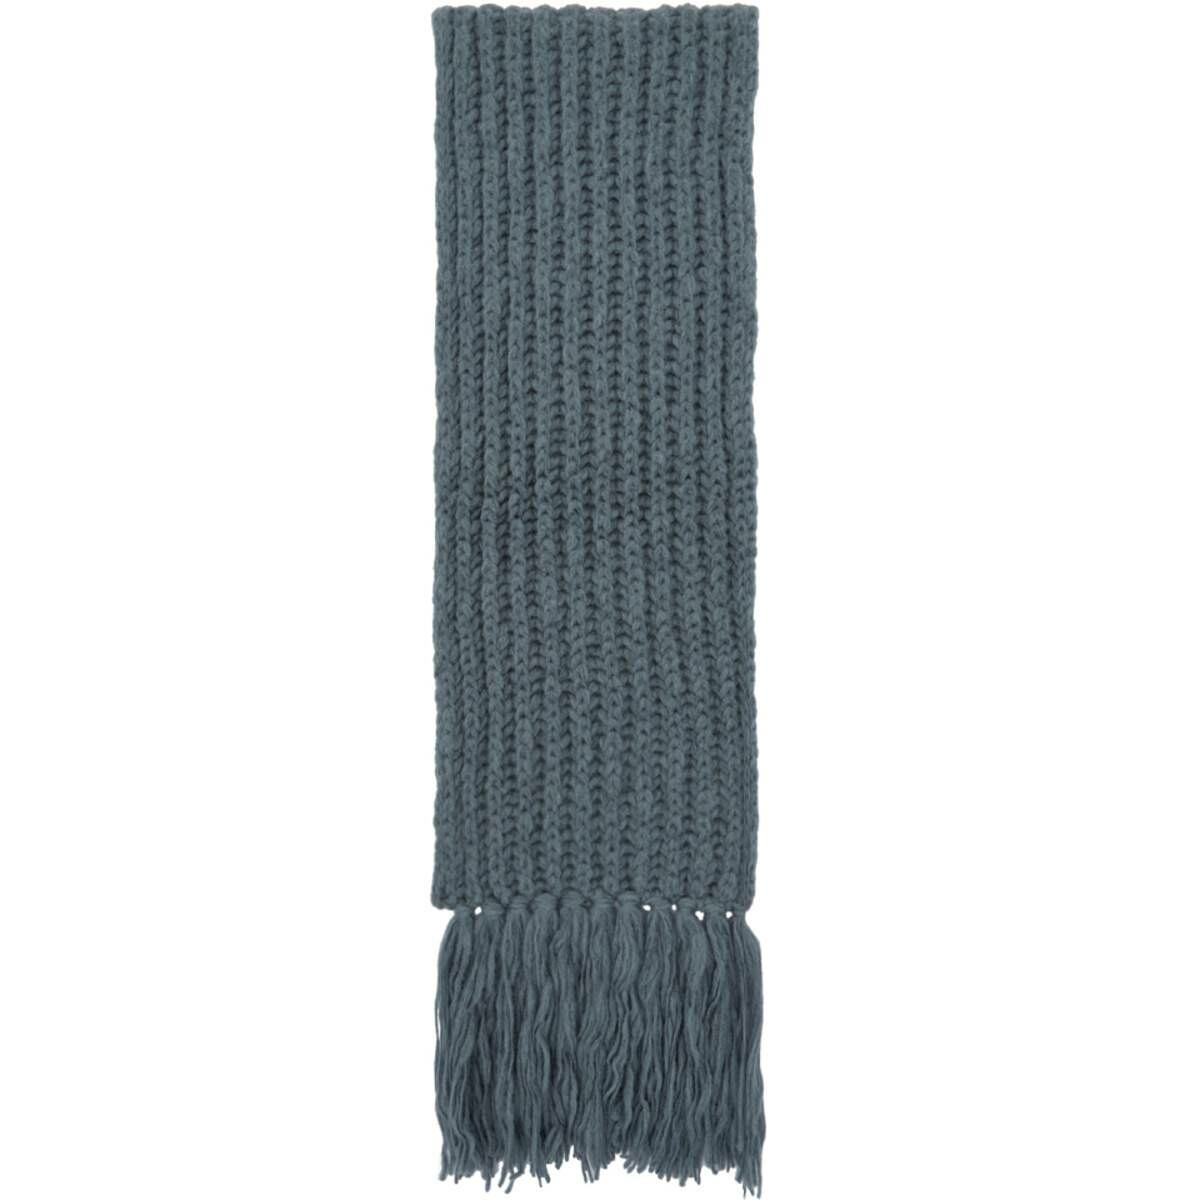 Dries Van Noten Blue Merino and Alpaca Maraz Scarf Ssense USA MEN Men ACCESSORIES Mens SCARFS